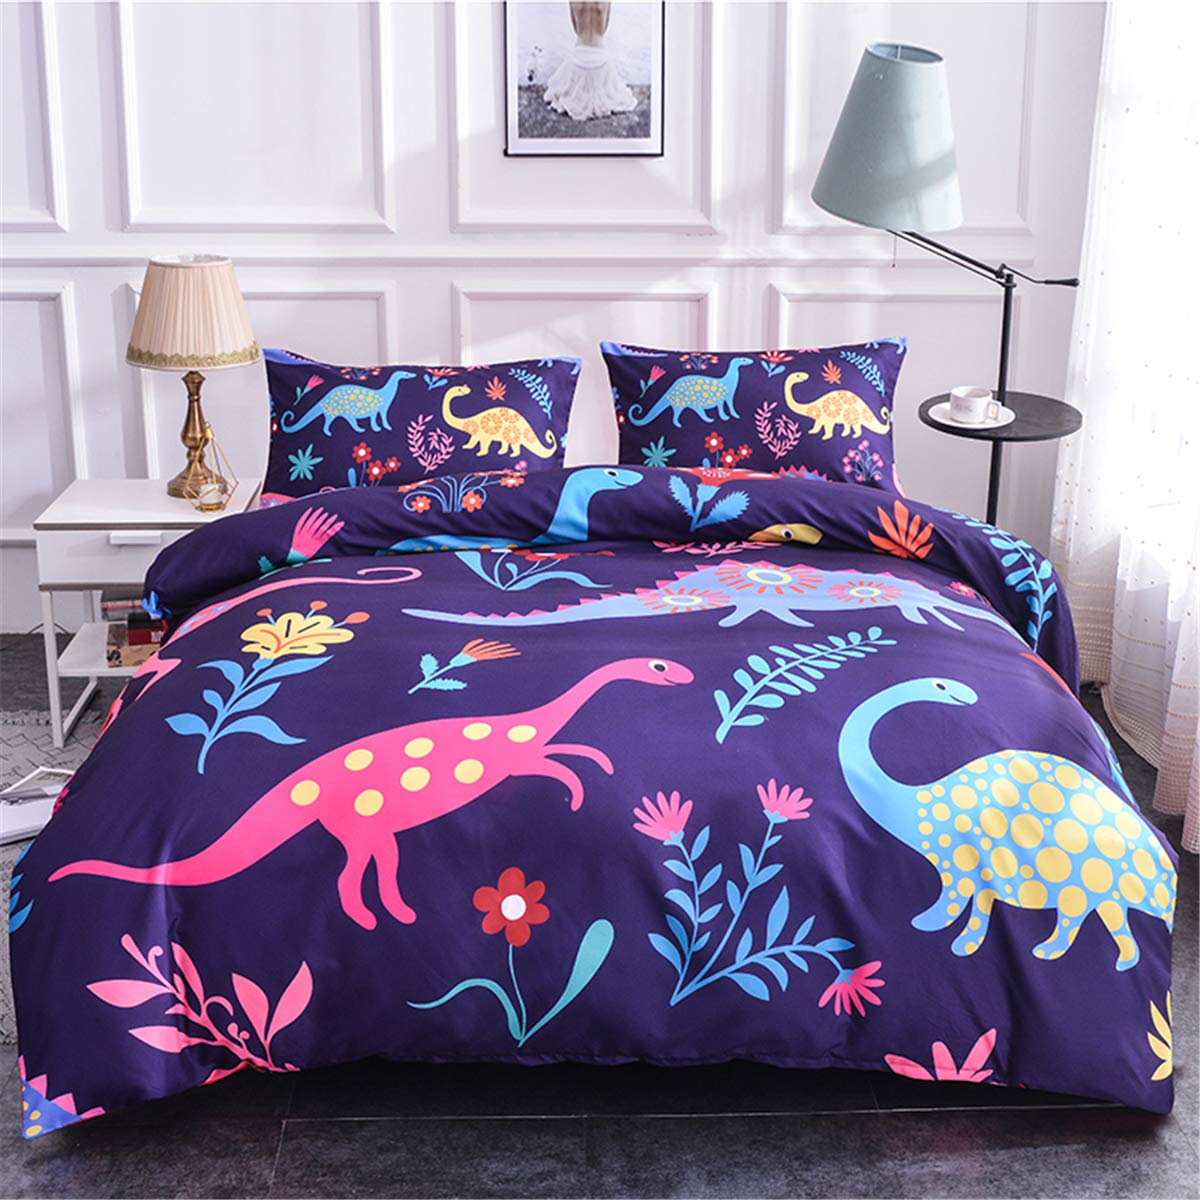 Dinosaur Flamingo Printed Boys Duvet Cover Set Twin Microfiber Puppy Floral Universal Animal Theme Cartoon Kids Girls 3D Bedding Sets (Dinosaur,Queen)